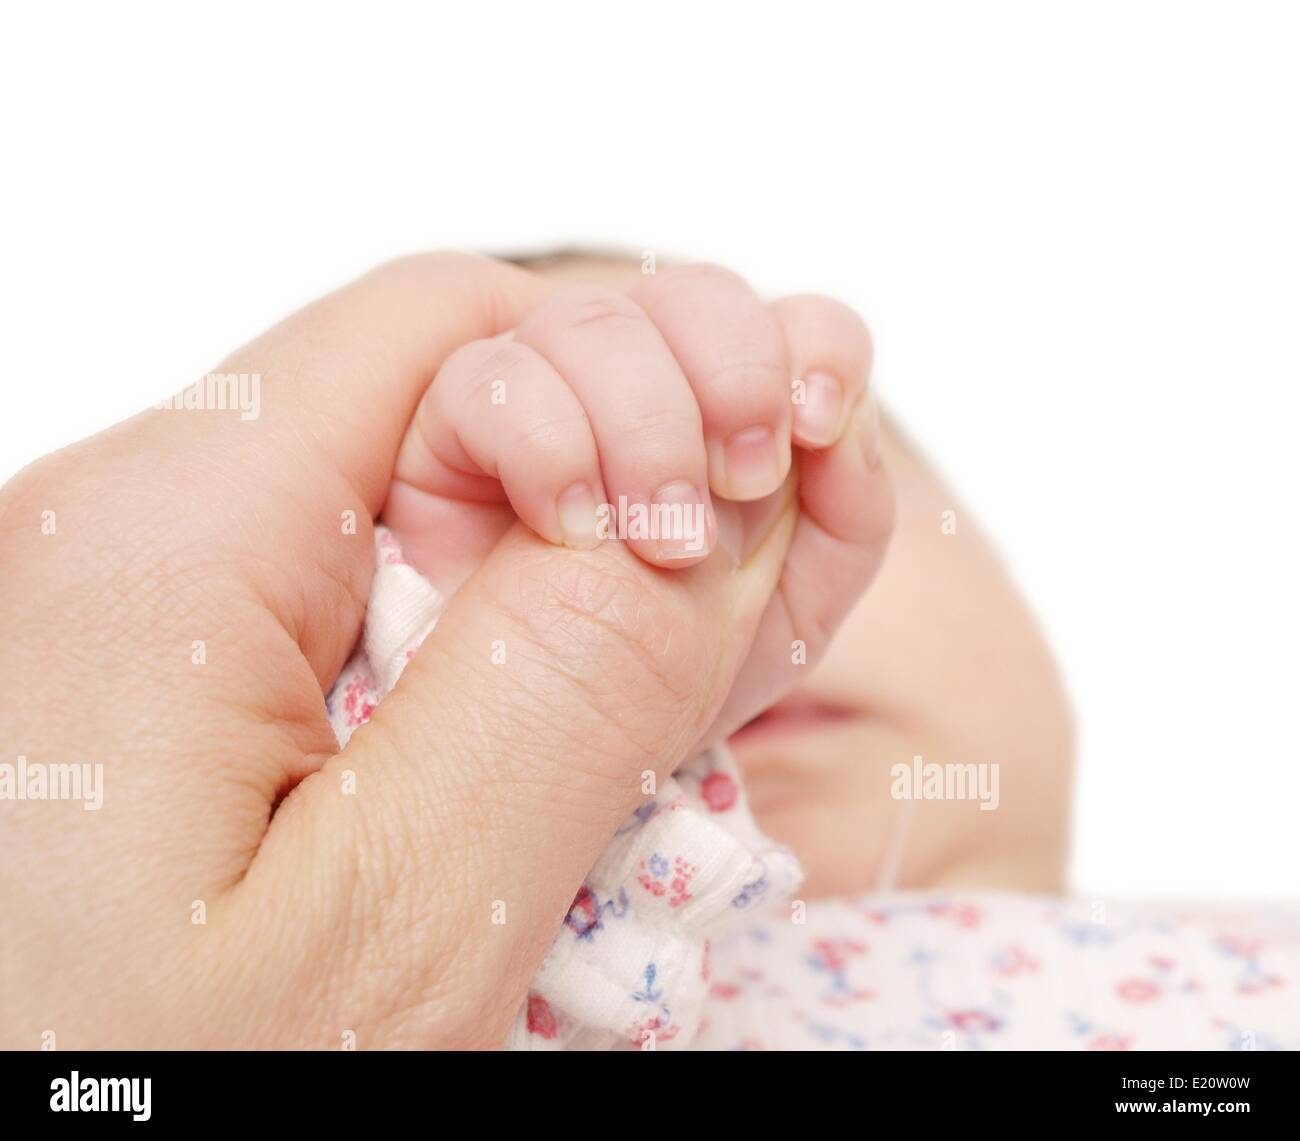 Baby holding onto a grownups hand - Stock Image